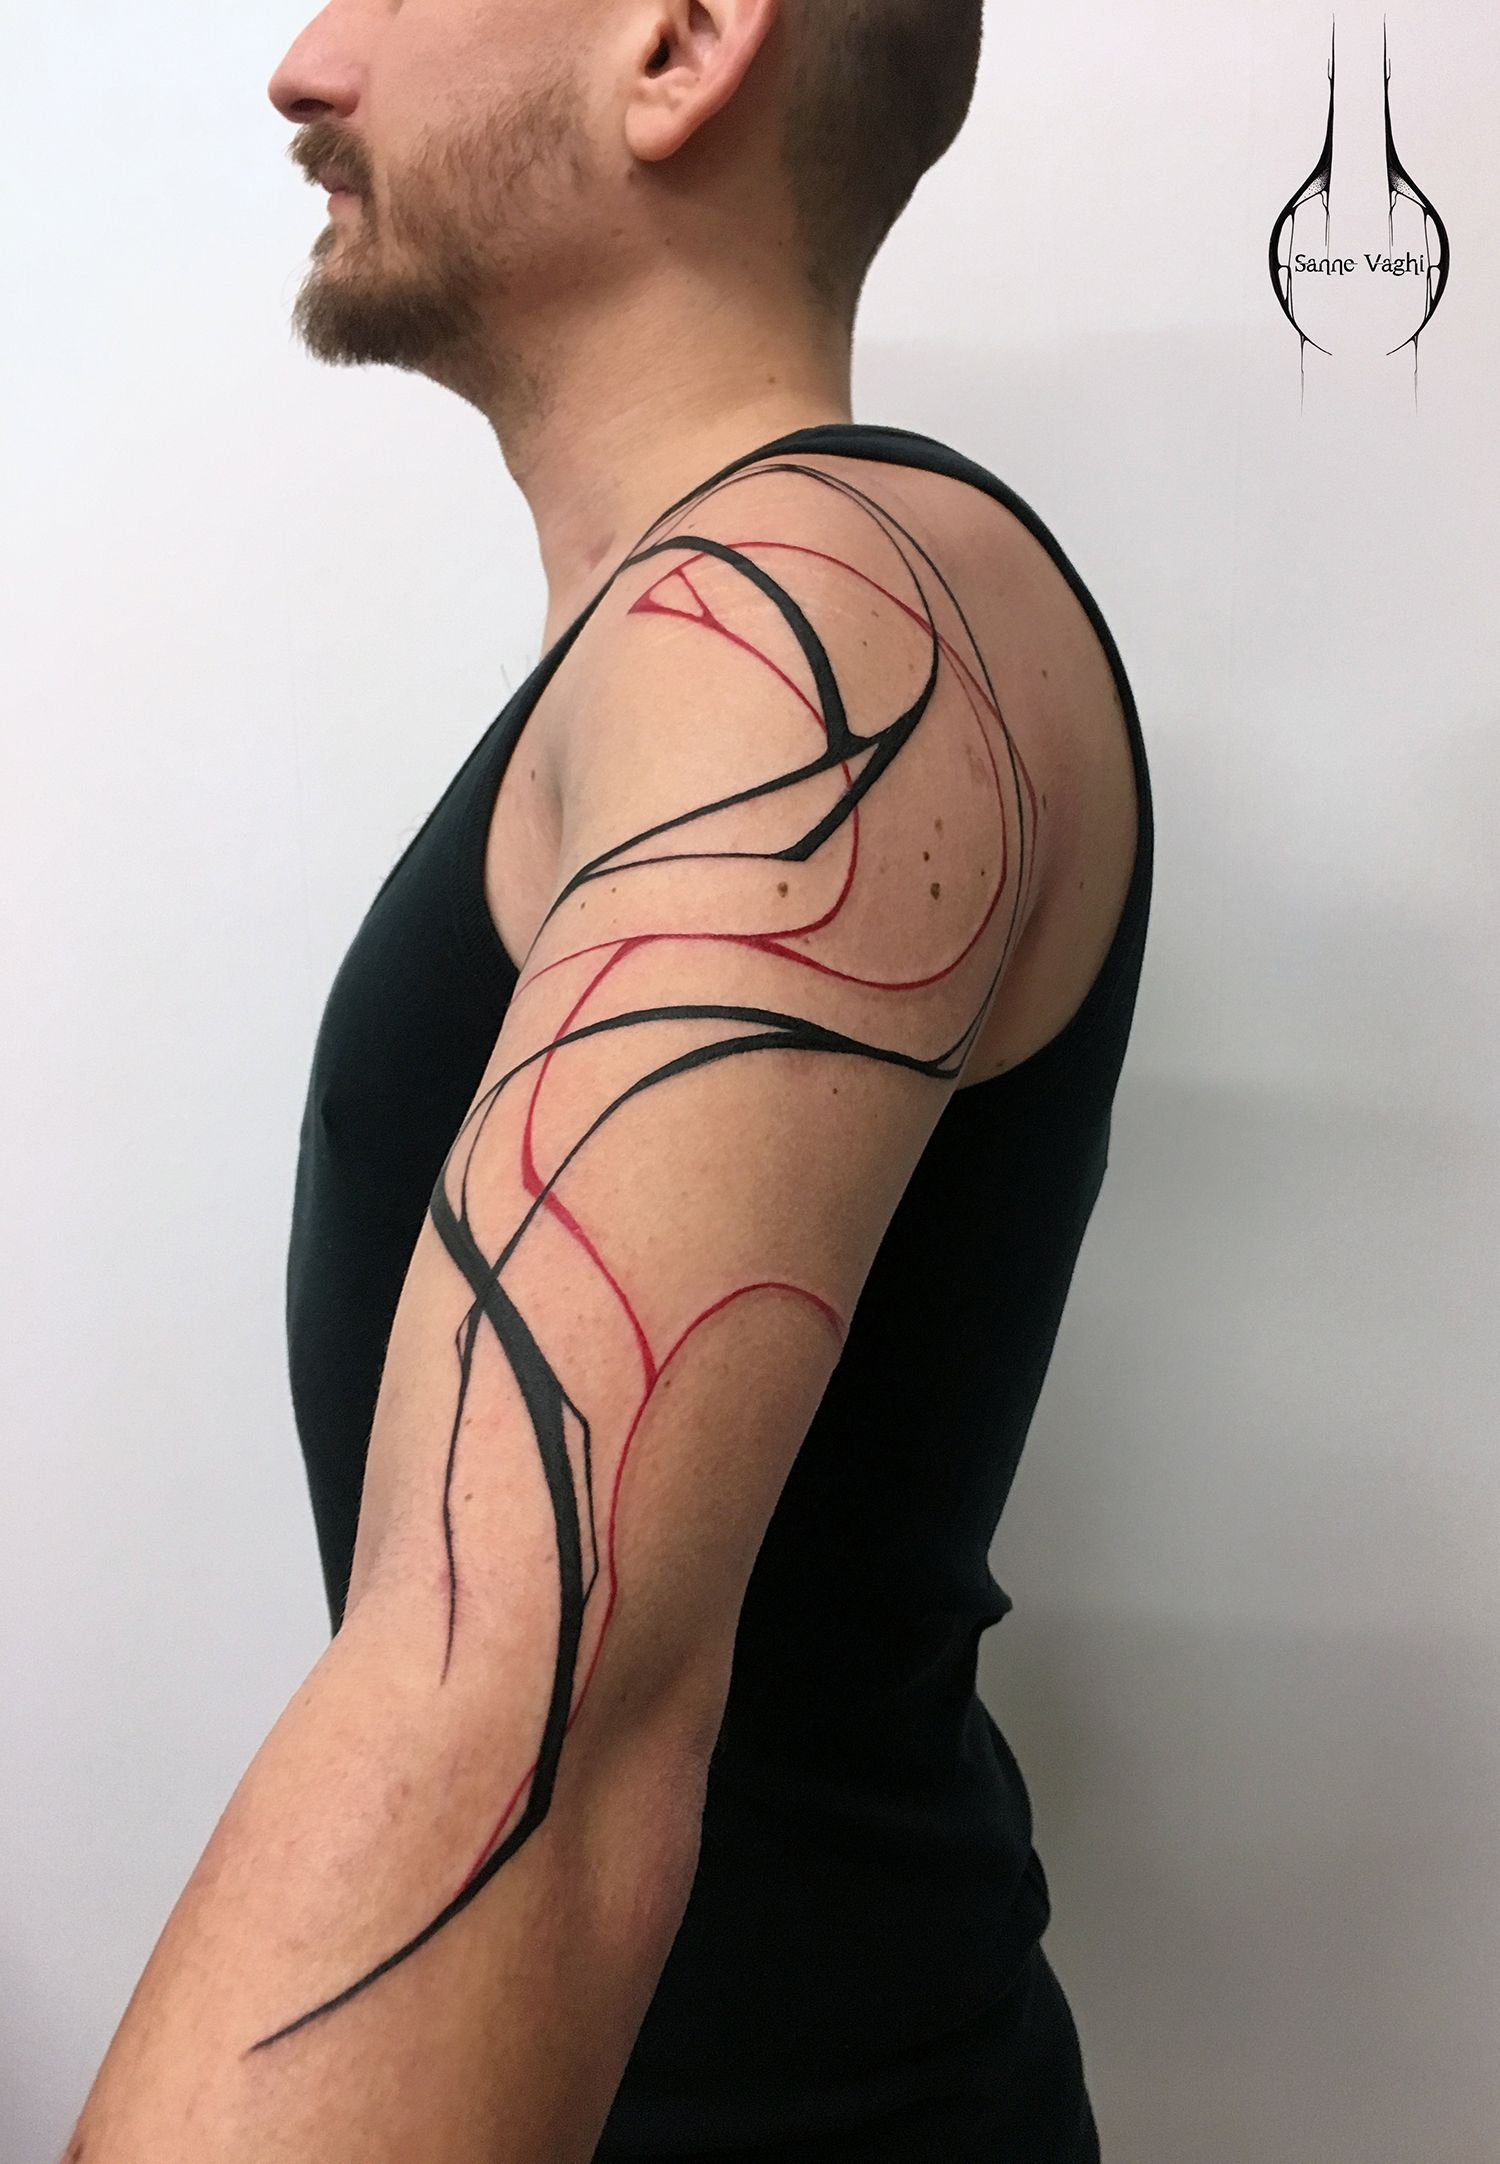 red and black tattoo on shoulder abstract shoulder tattoo by sanne vaghi